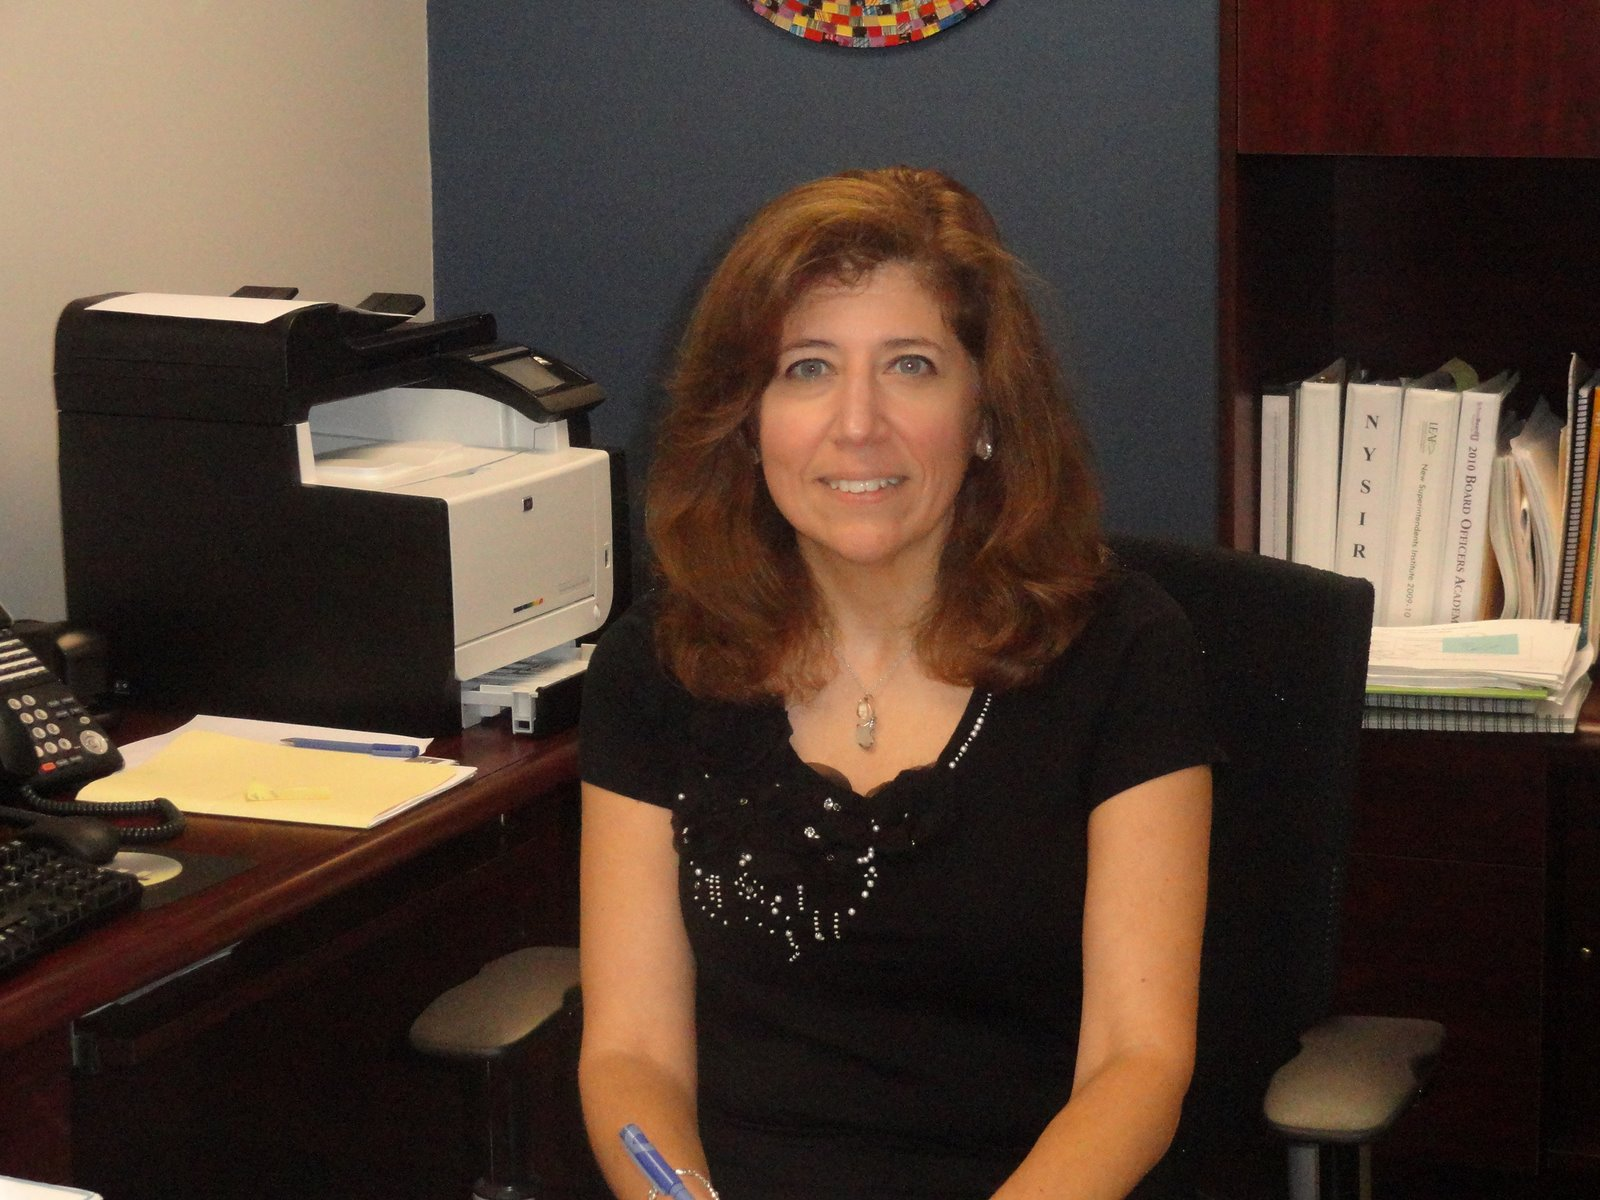 Mount Pleasant Central School District Superintendent Dr. Susan Guiney recaps the school year and looks ahead to 2014-2015.